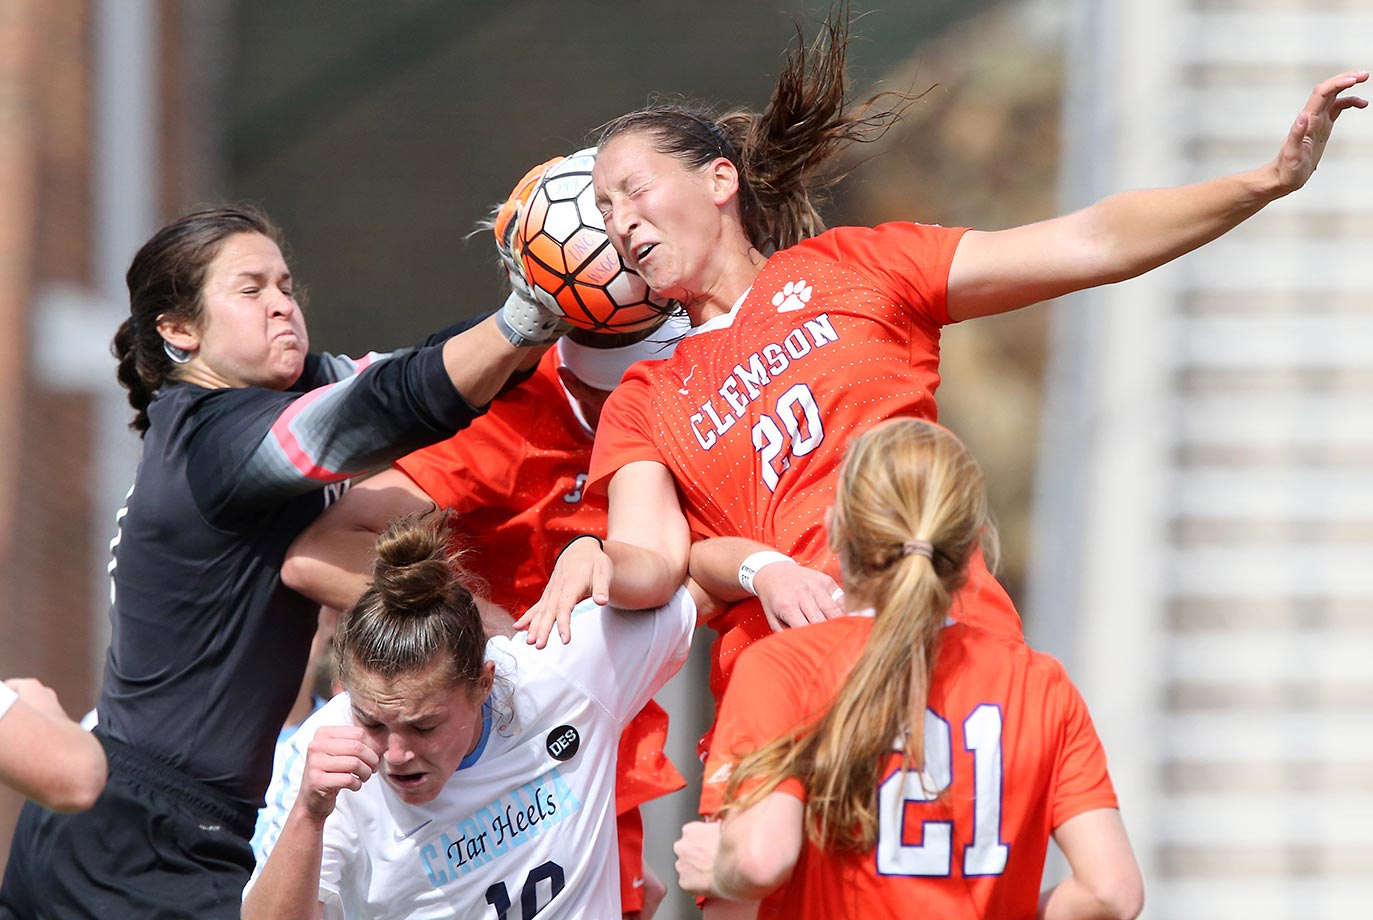 Goalie Bryane Heaberlin of North Carolina jams the ball into Jenna Weston of Clemson.